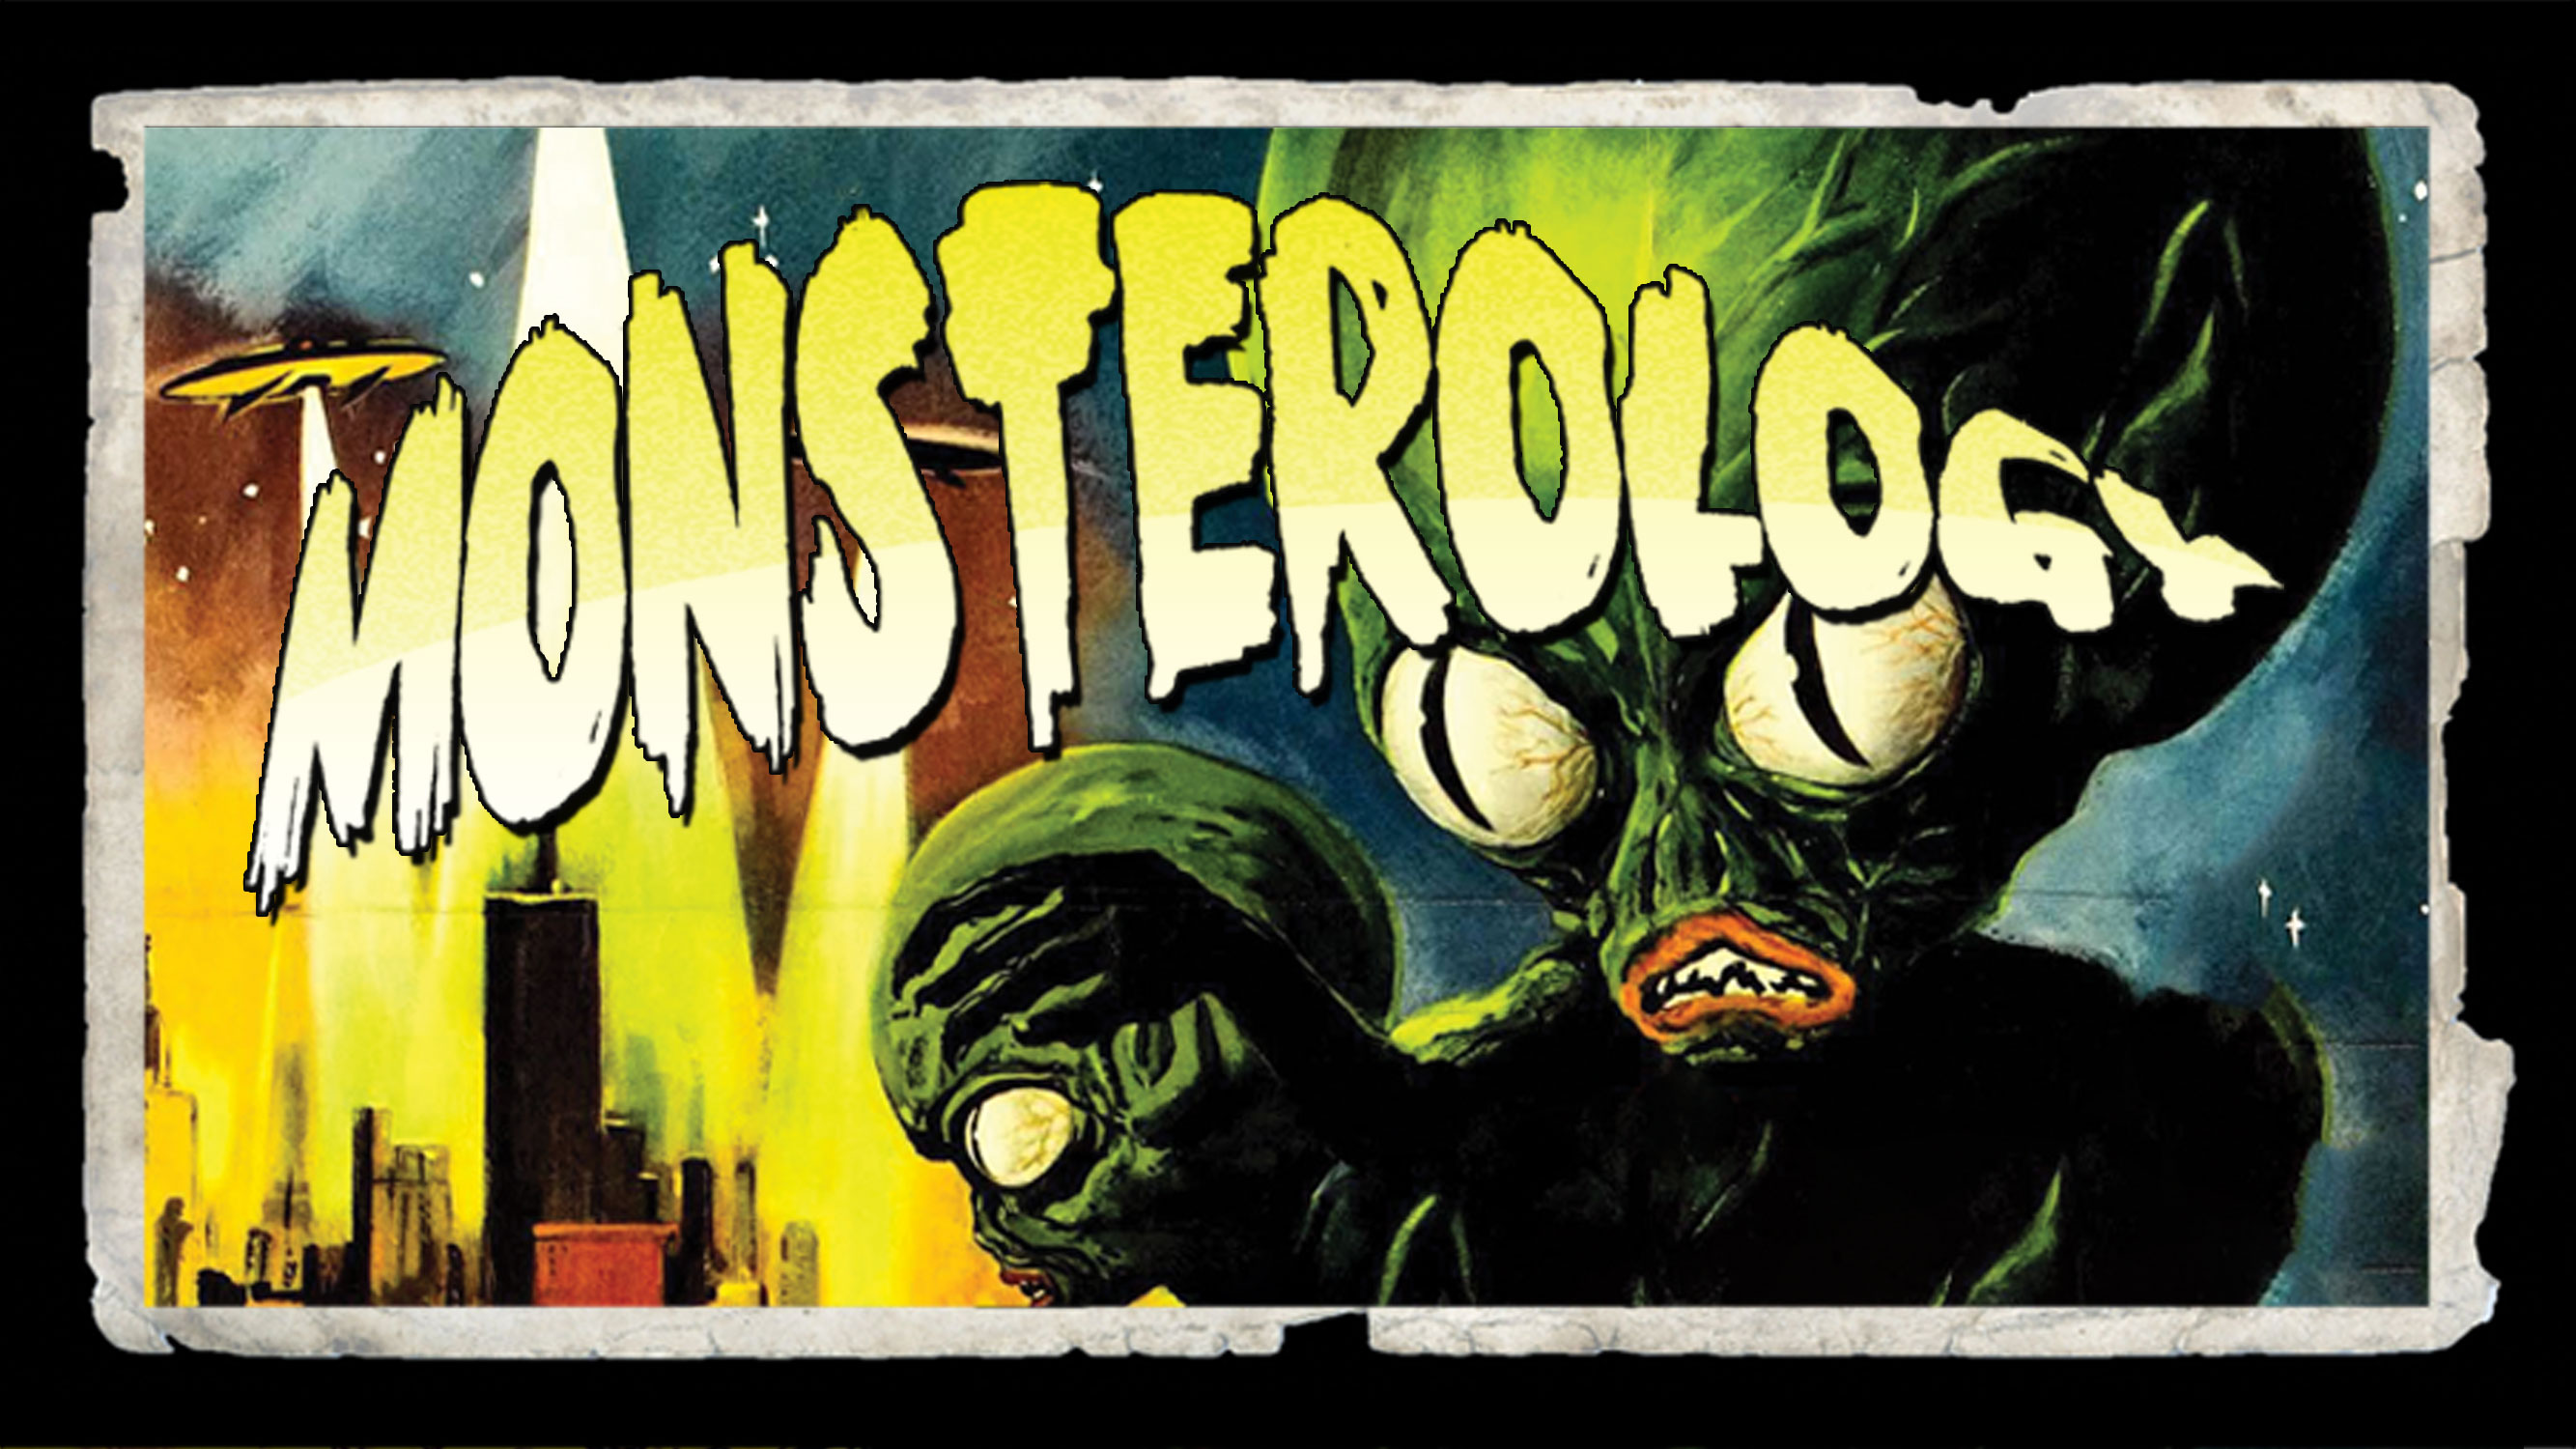 Monsterology